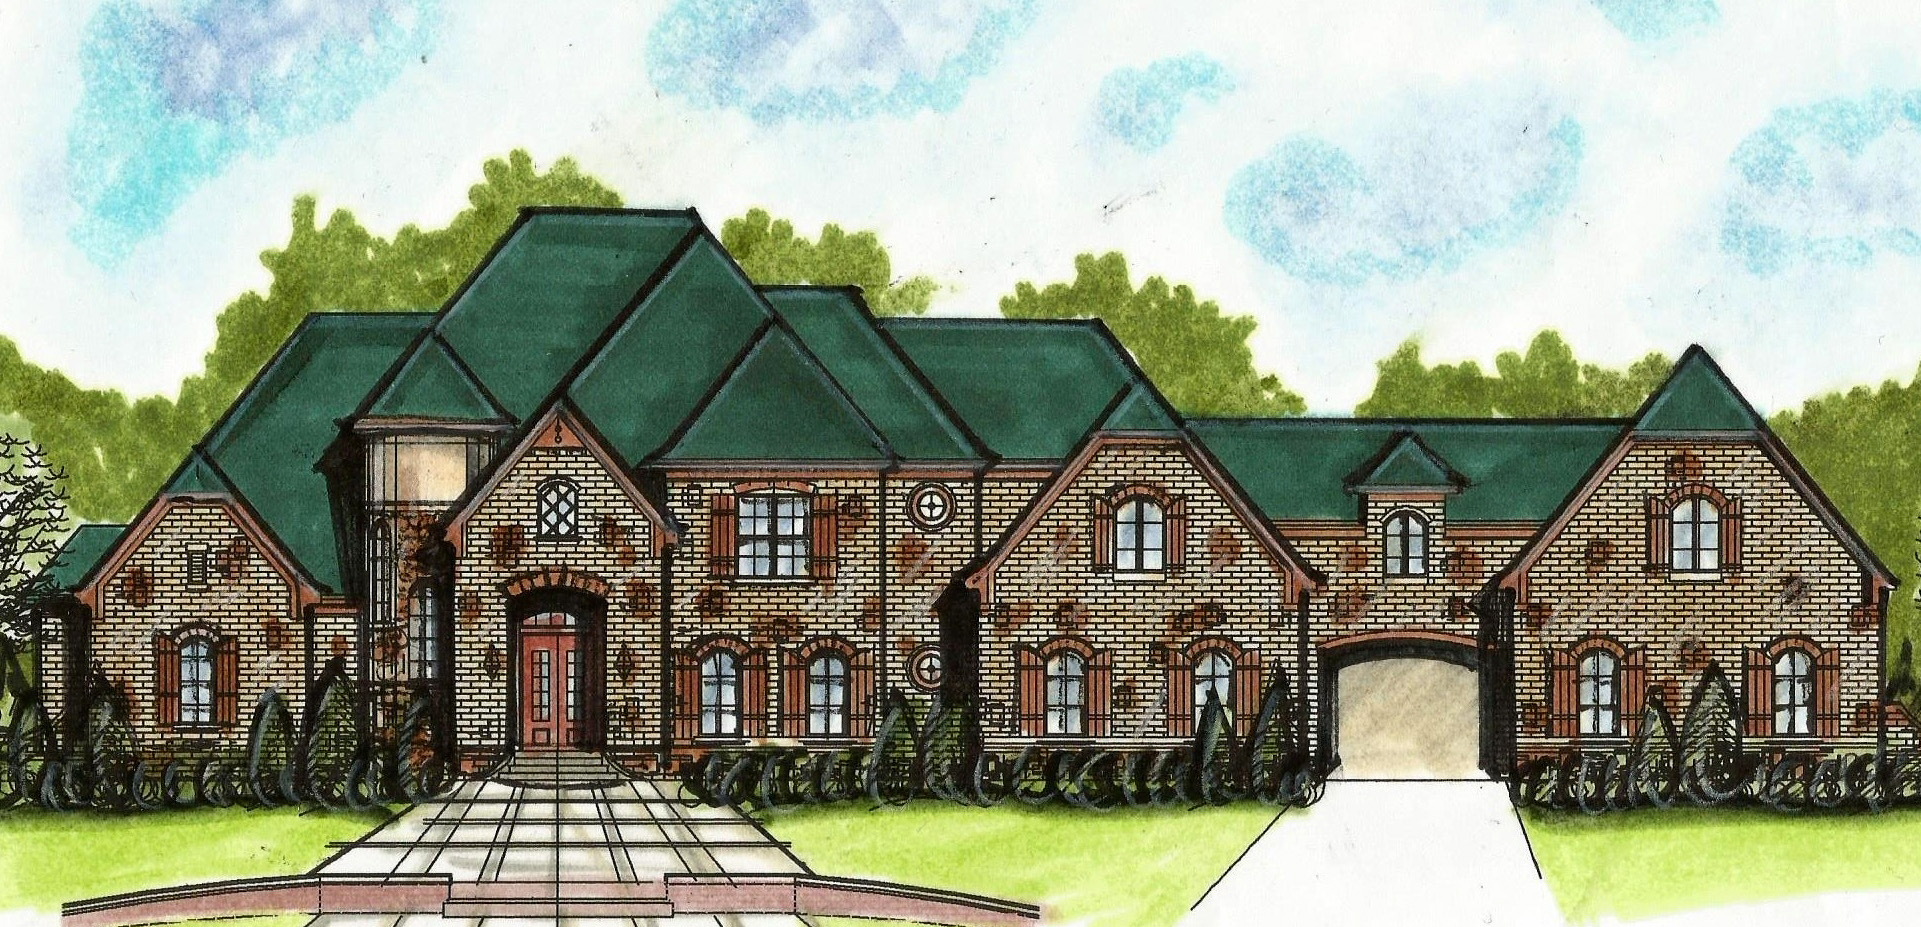 European House Plan With Porte-cochere - 13498by